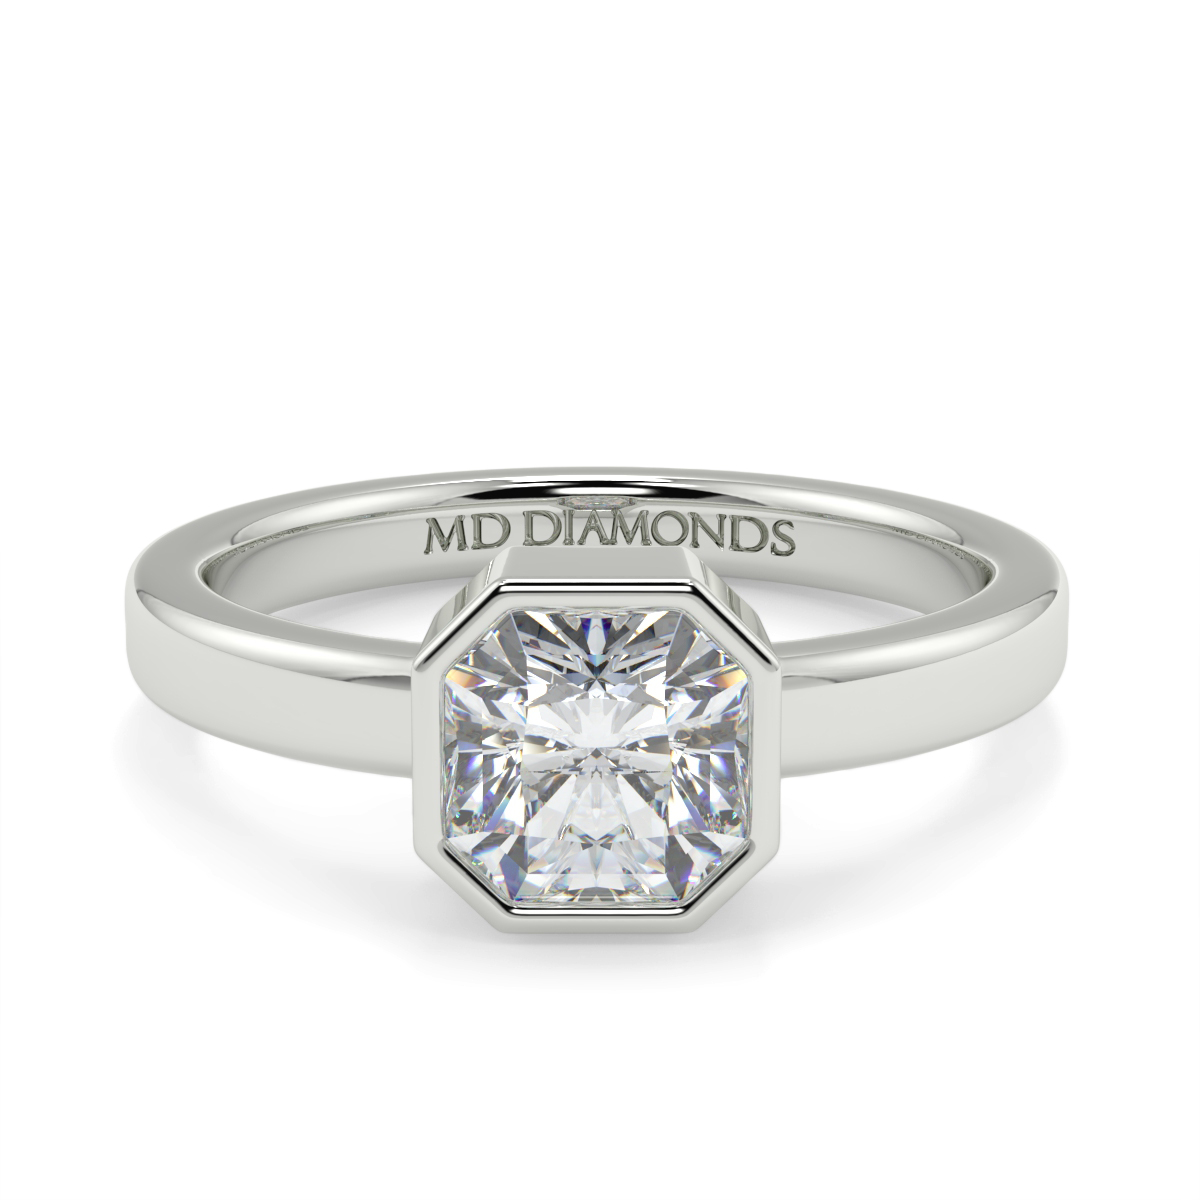 Assher Soliraire Rubover Ring